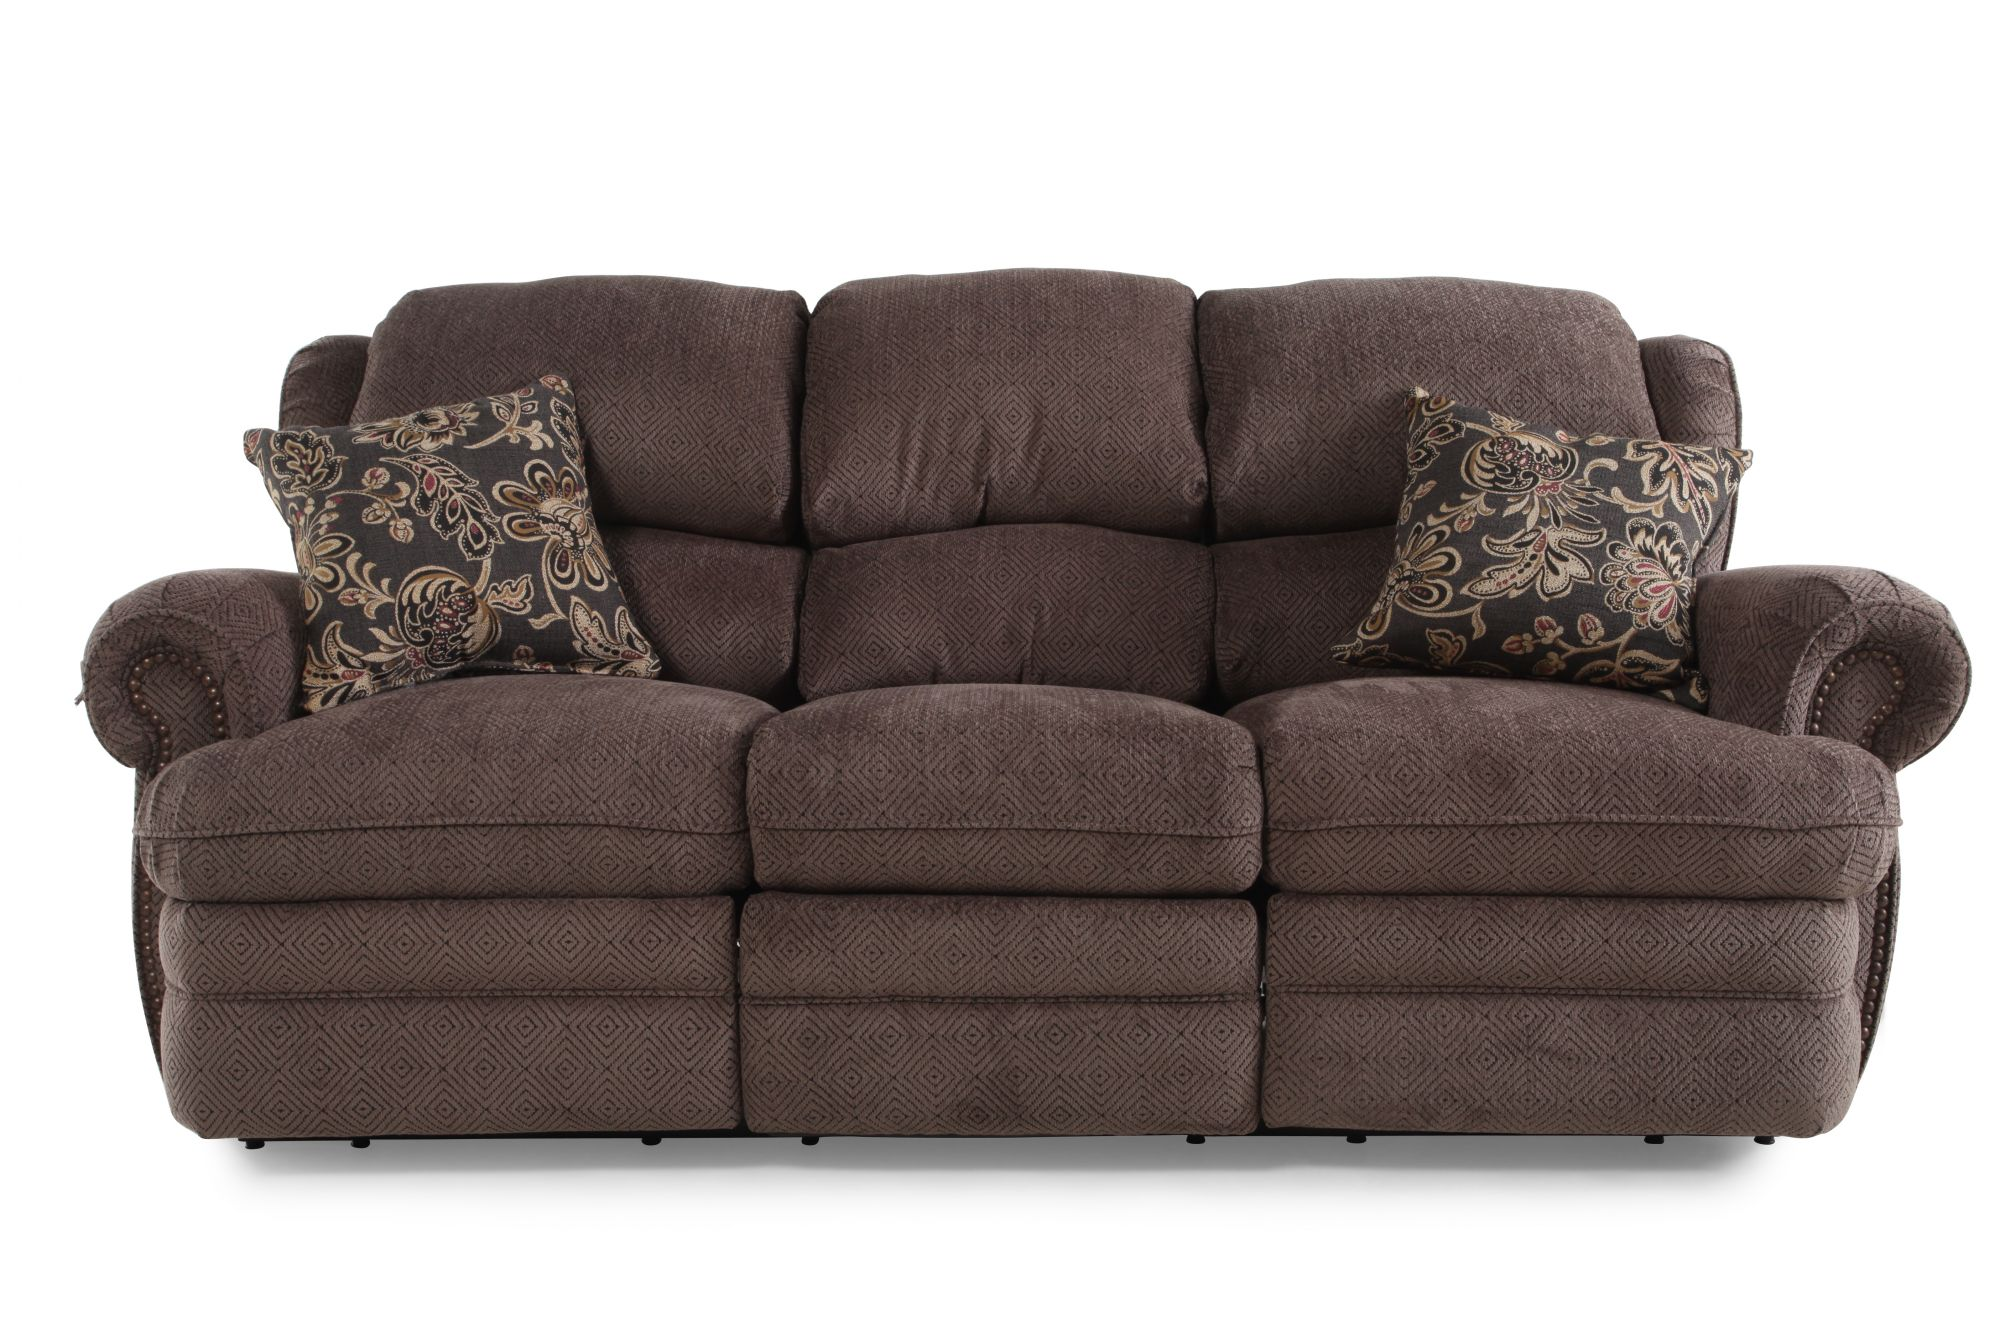 Lane Furniture Han Double Reclining Sofa